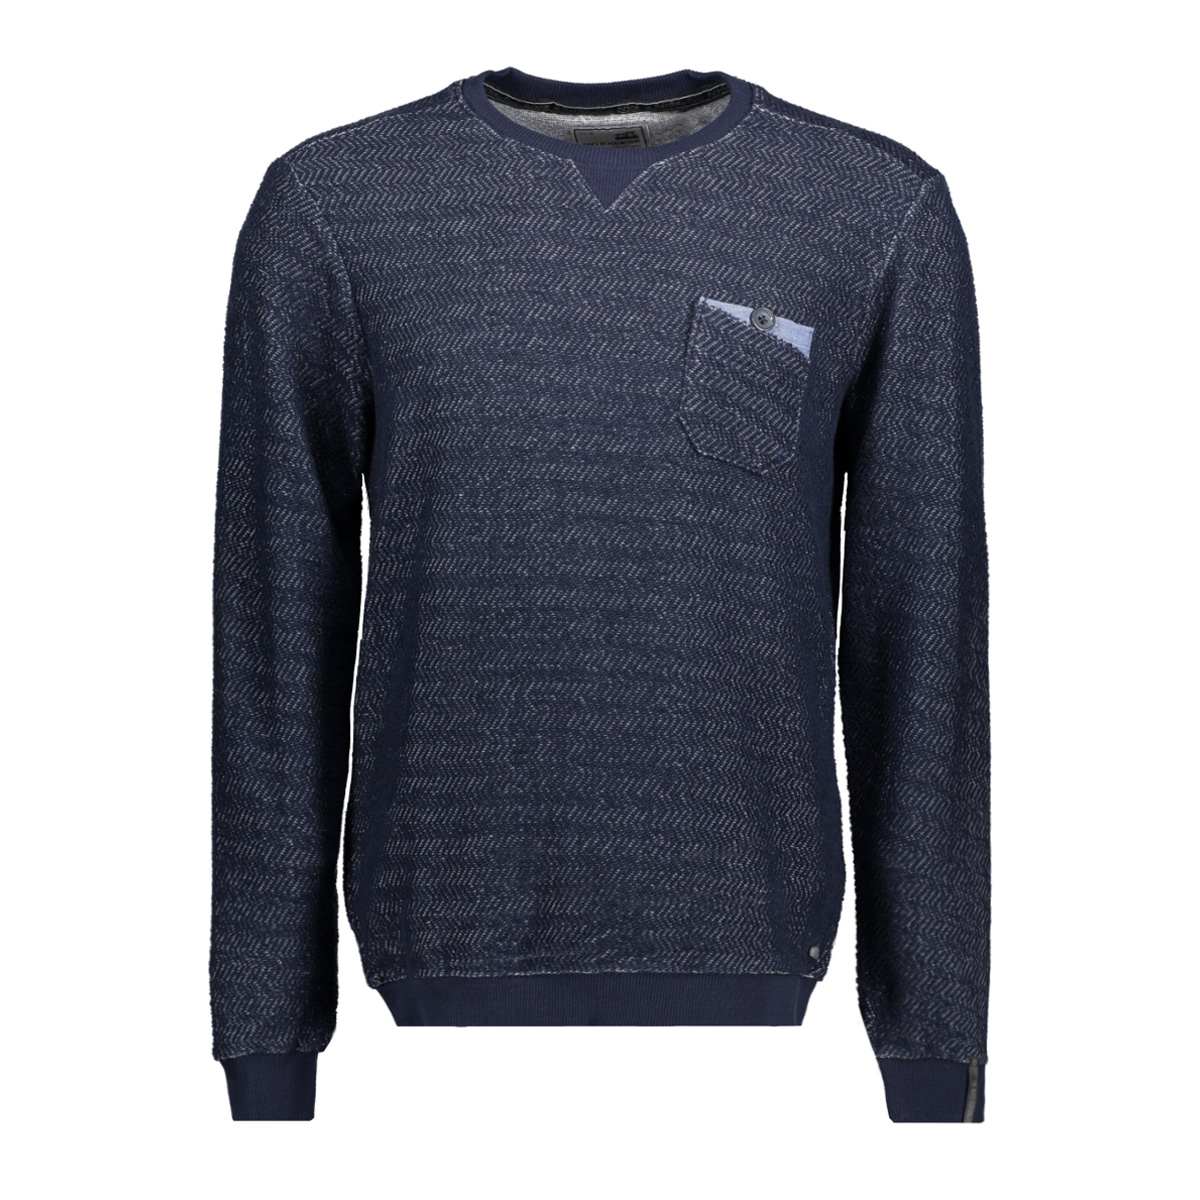 83131001 no-excess sweater 037